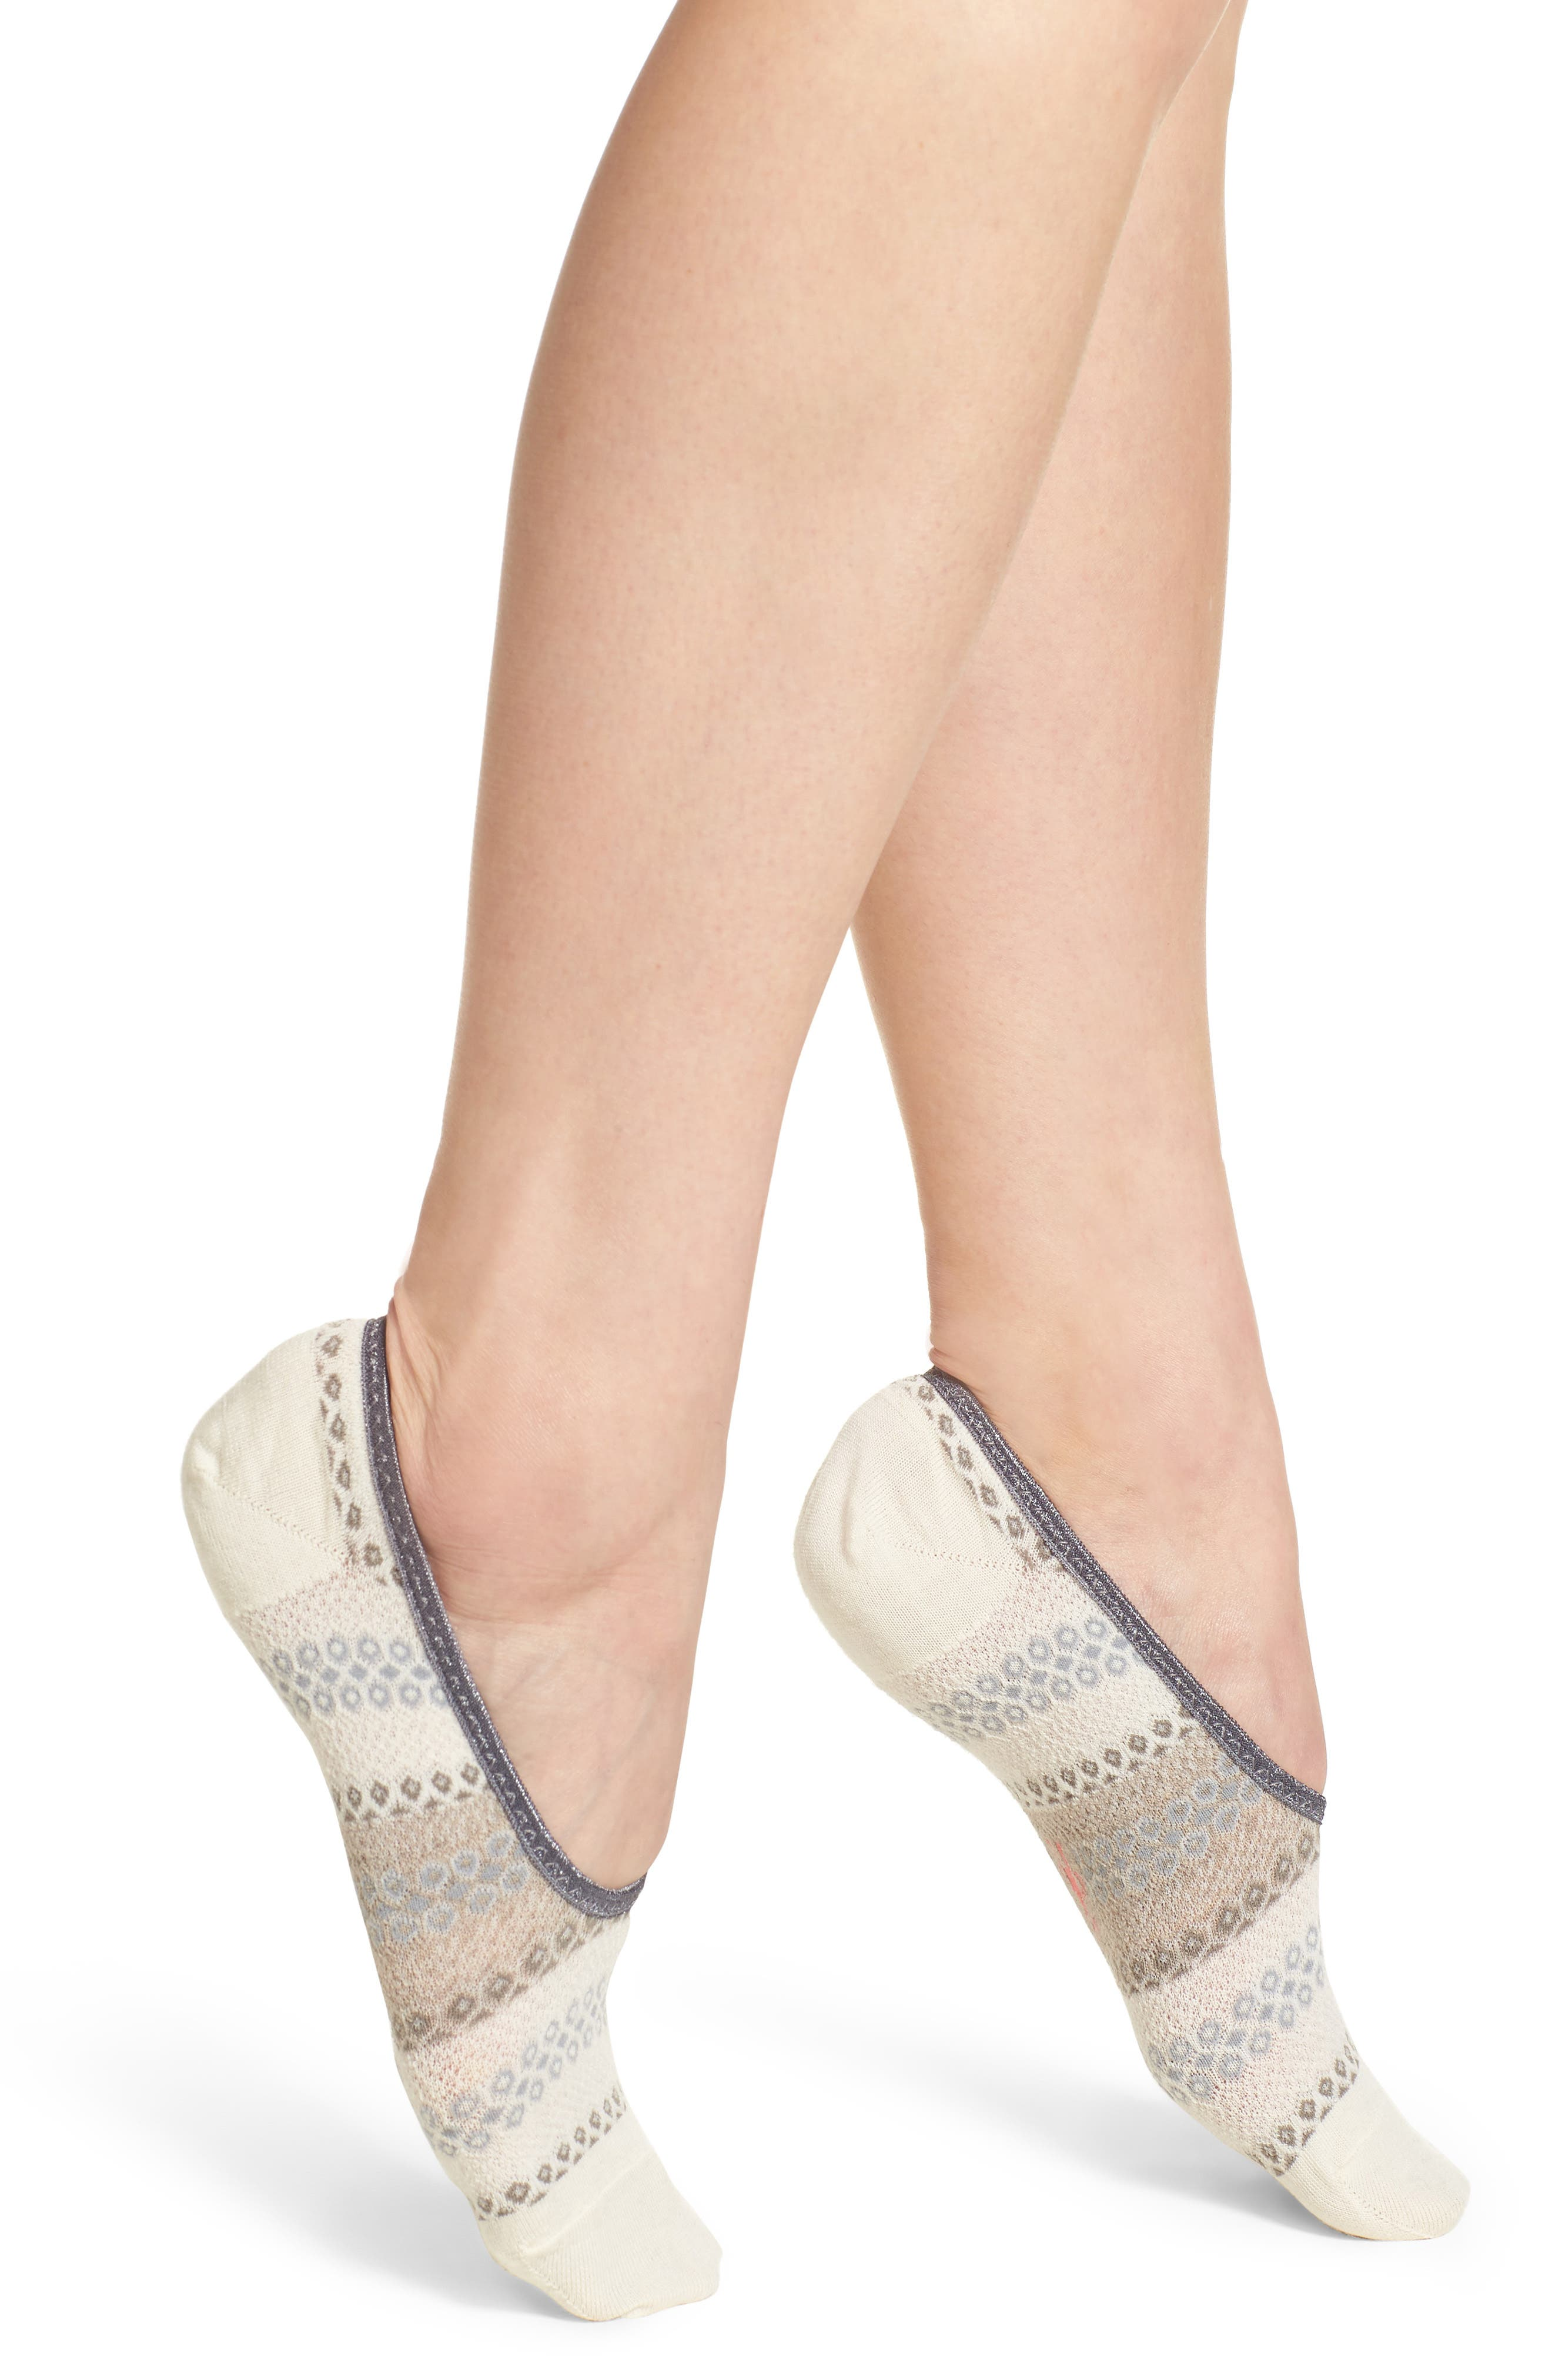 Beyond The Hive Hide & Seek No-Show Socks,                         Main,                         color, 900